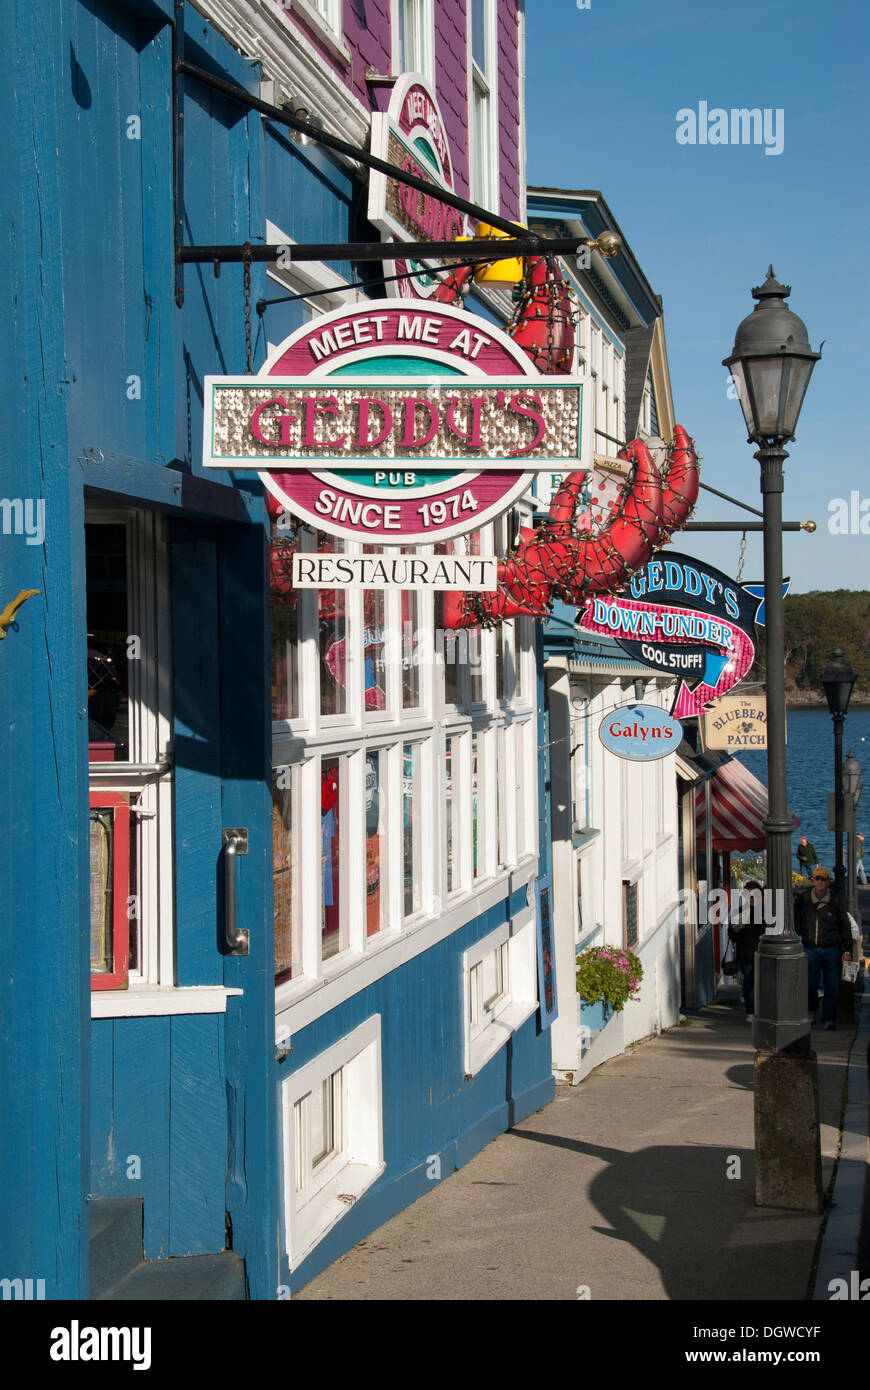 Geddy S Lobster Restaurant Bar Harbor Maine New England